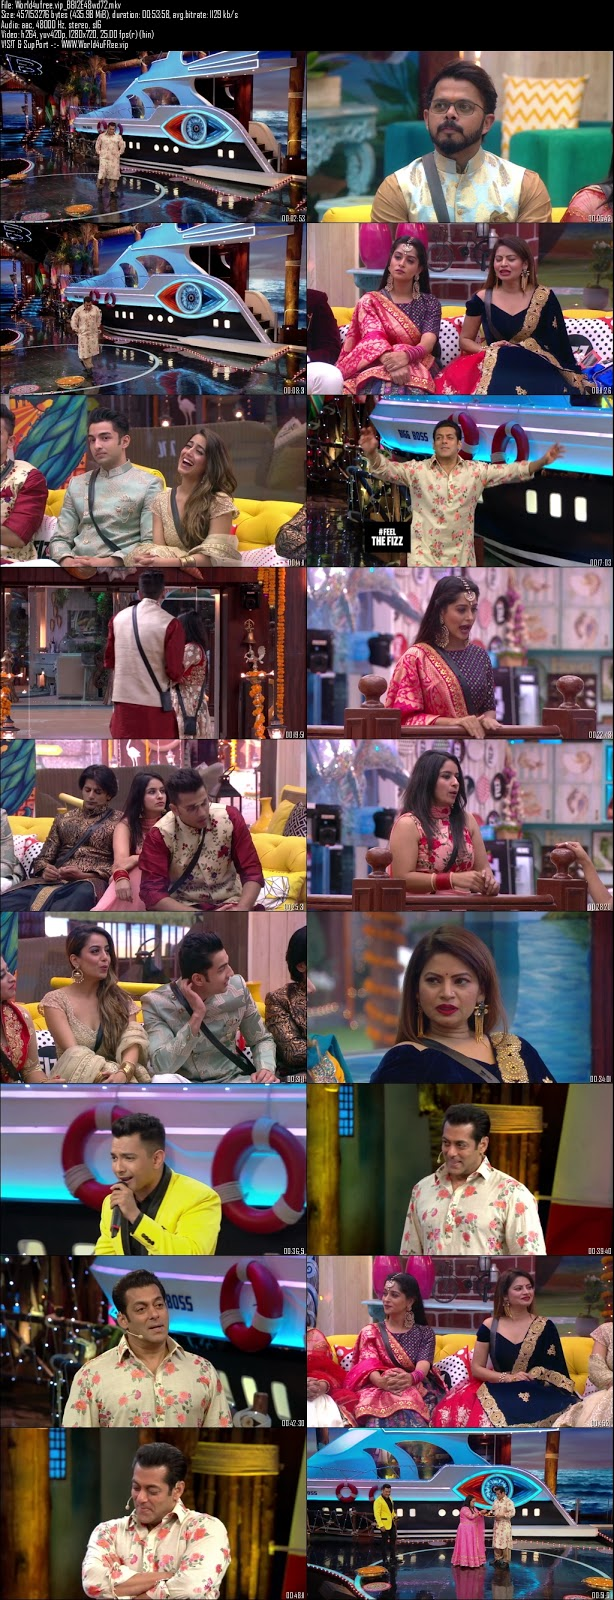 Bigg Boss 12 Episode 48 03 November 2018 720p WEBRip 400Mb x264 world4ufree.fun tv show Episode 48 03 november 2018 world4ufree.fun 300mb 250mb 300mb compressed small size free download or watch online at world4ufree.fun